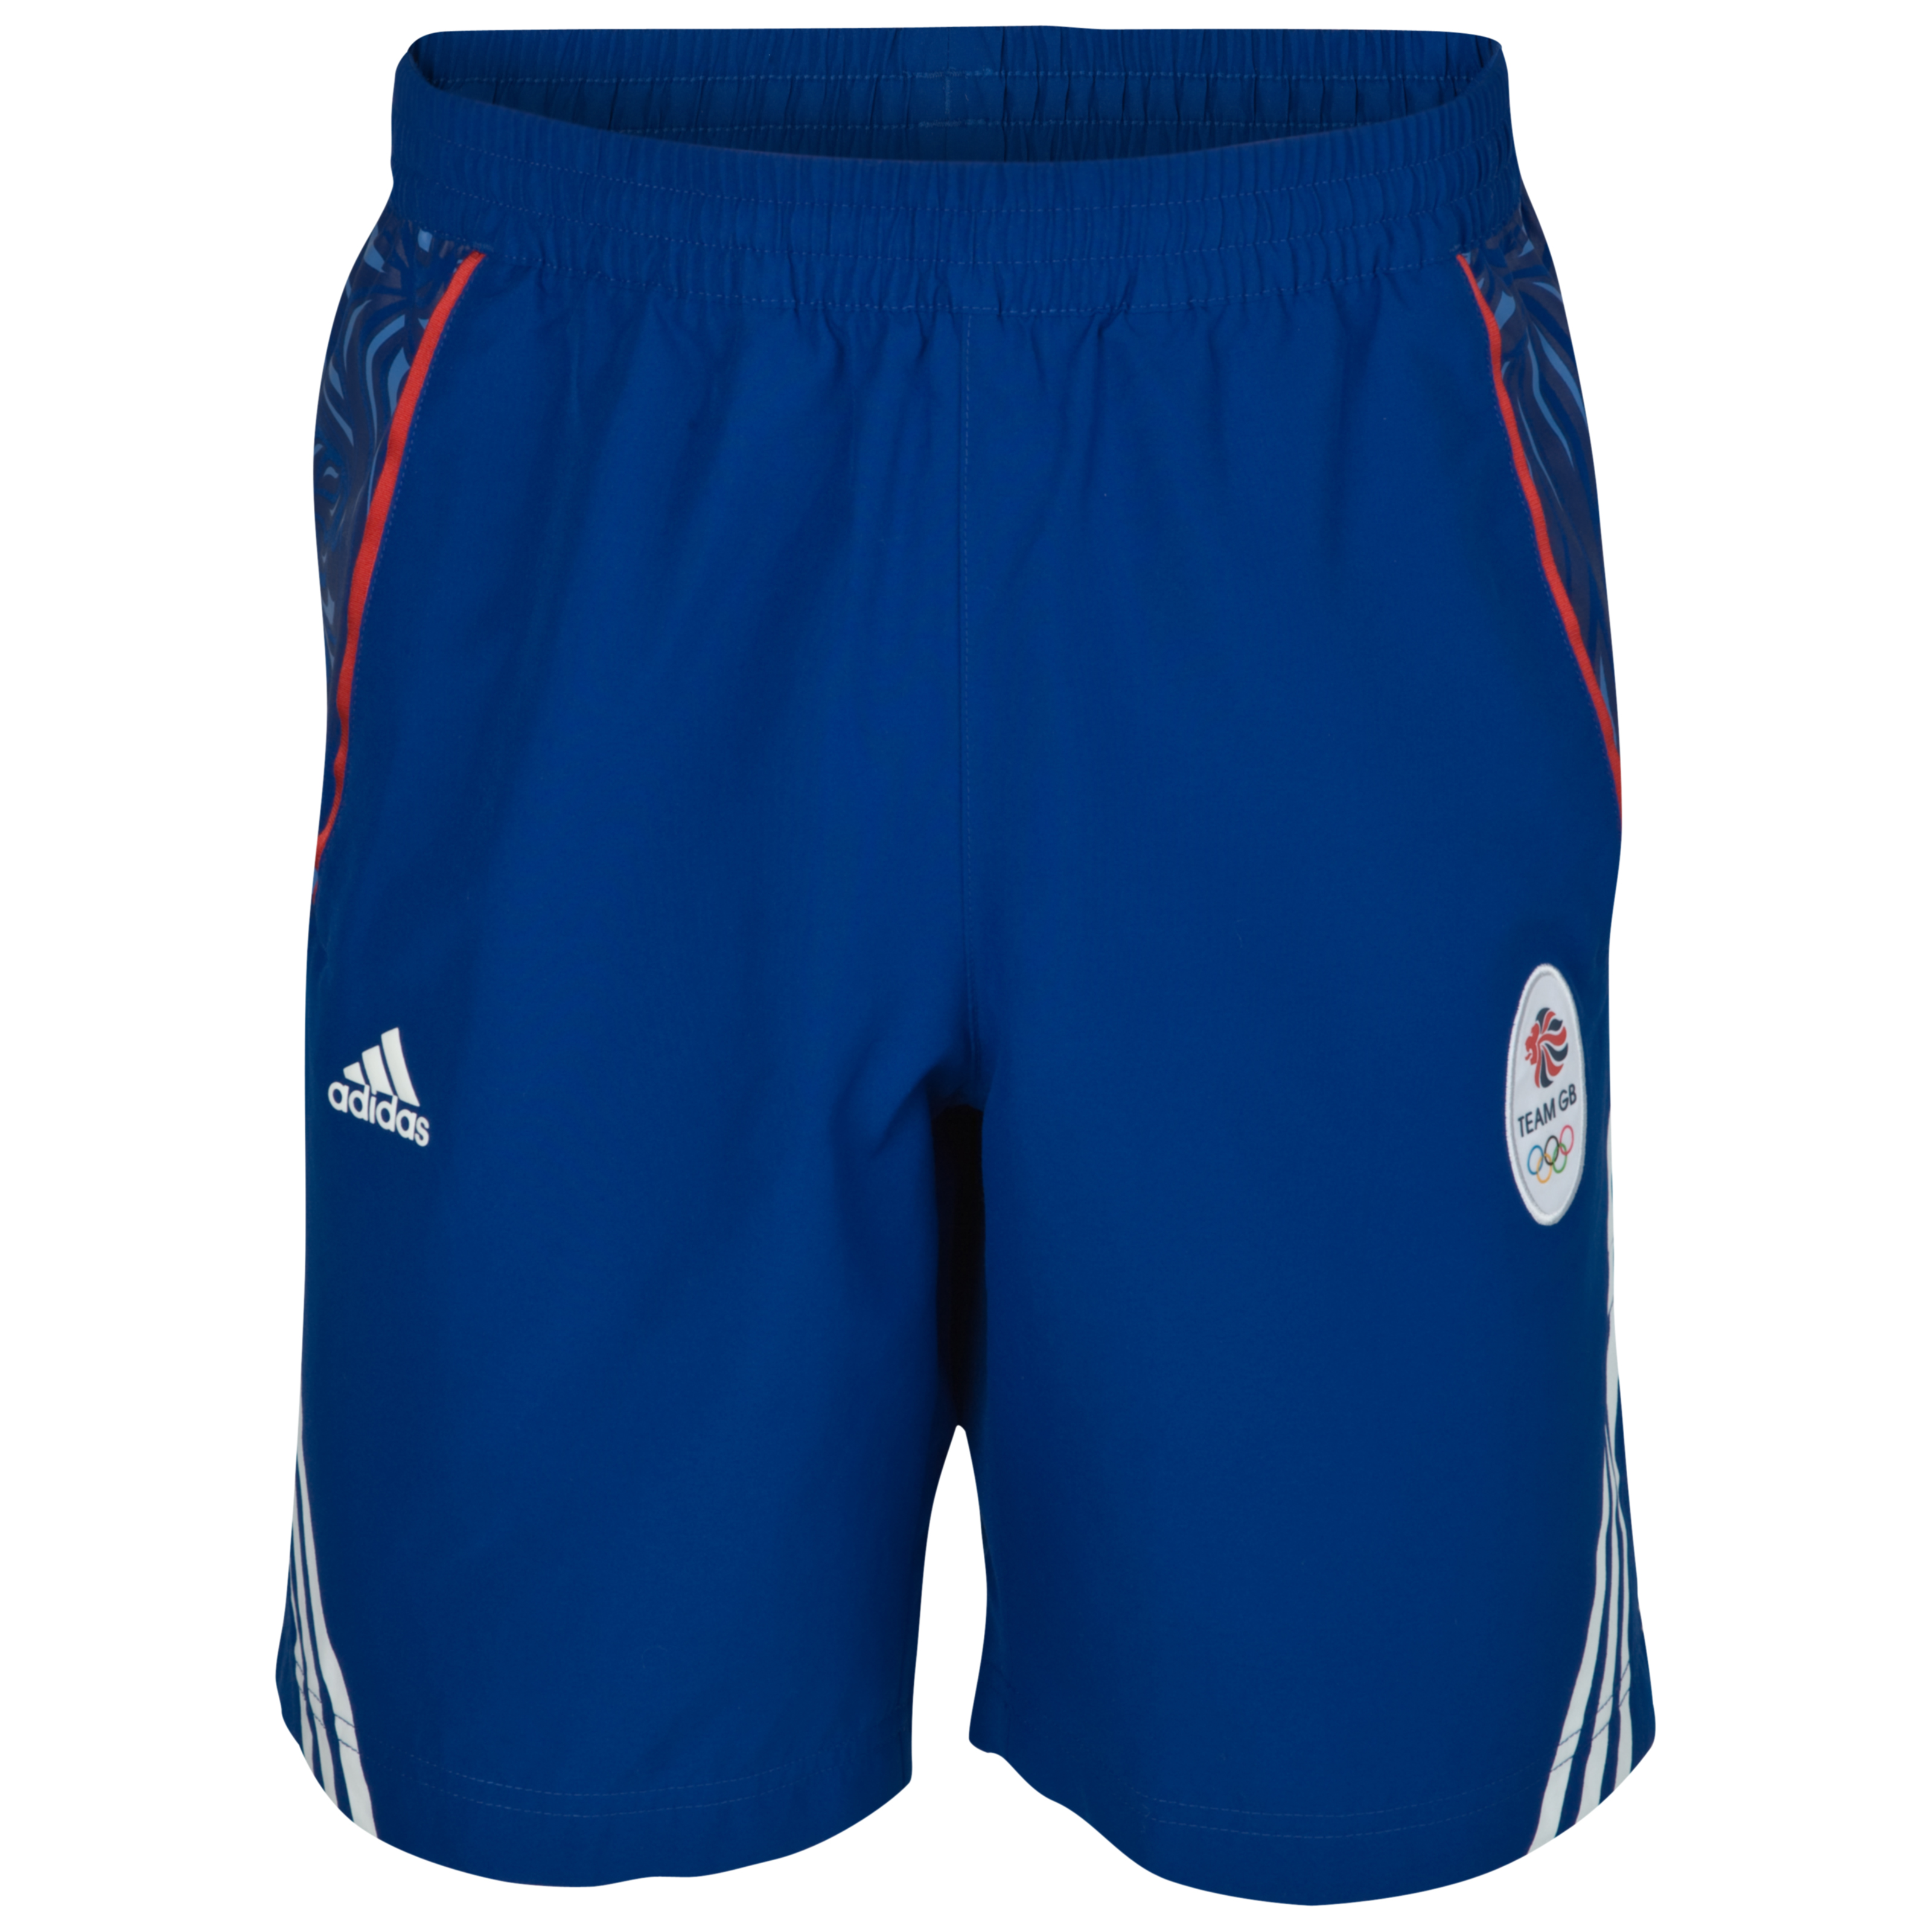 adidas Team GB Icon Short - Collegiate Royal